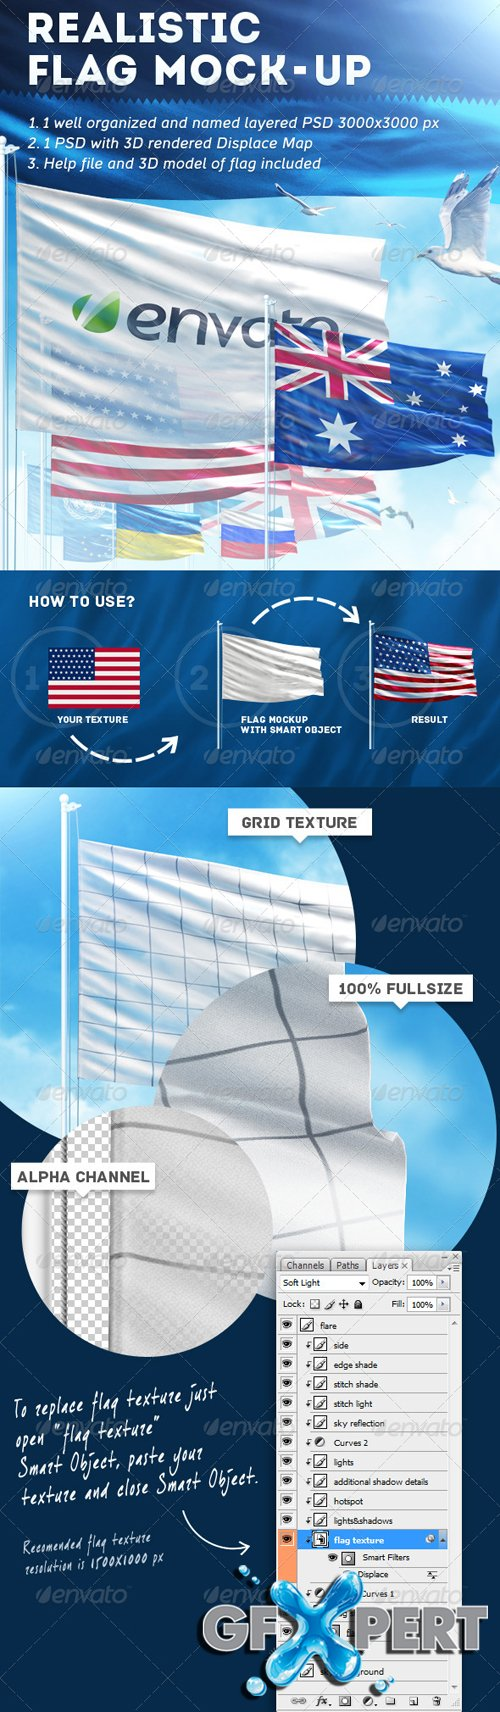 Realistic Flag Mock-Up